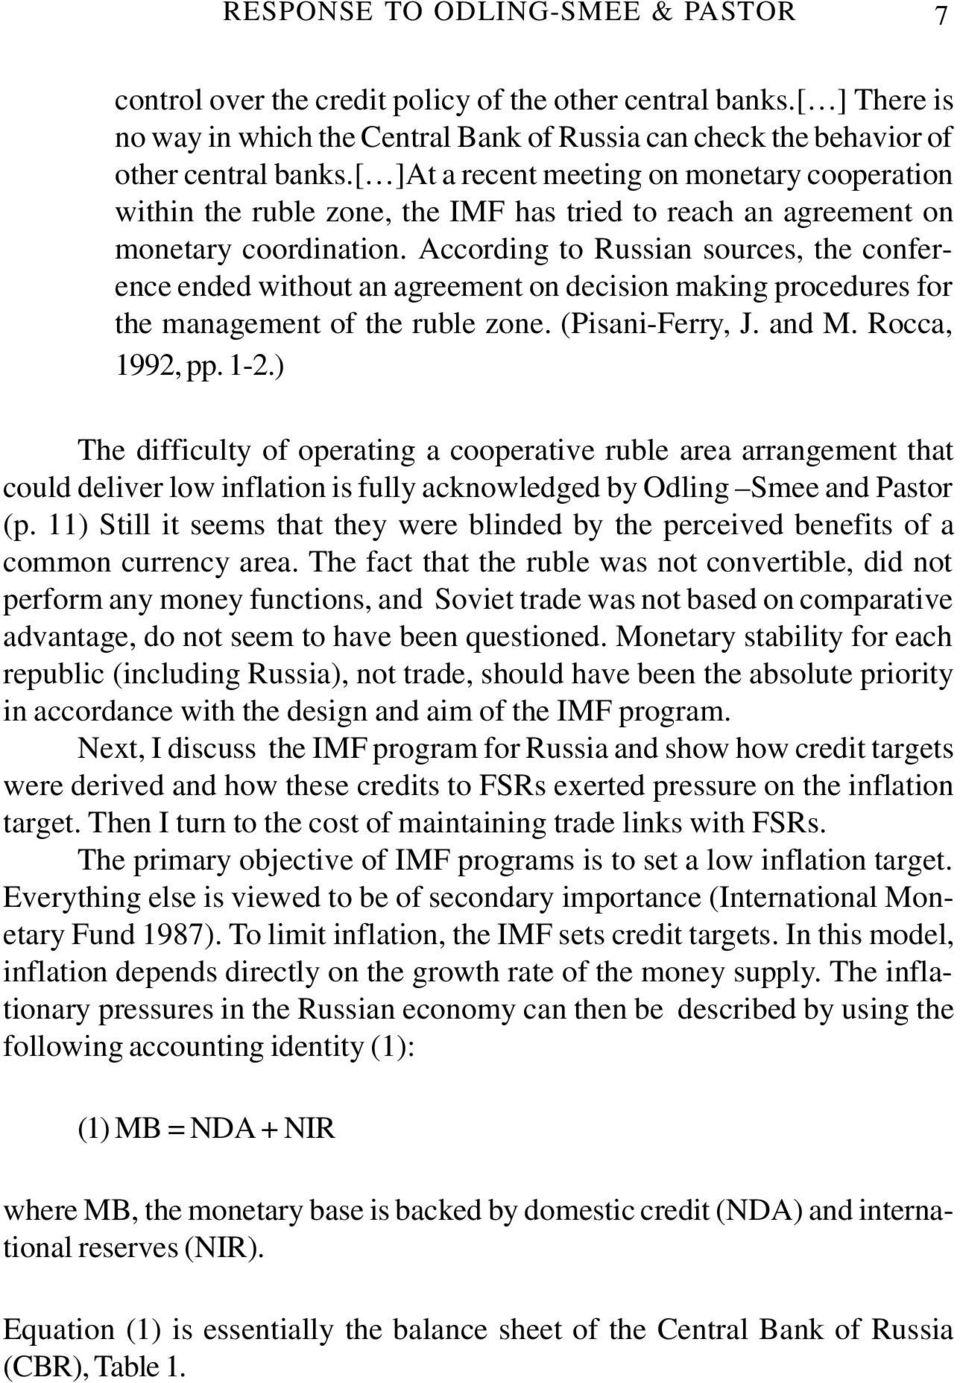 According to Russian sources, the conference ended without an agreement on decision making procedures for the management of the ruble zone. (Pisani-Ferry, J. and M. Rocca, 1992, pp. 1-2.